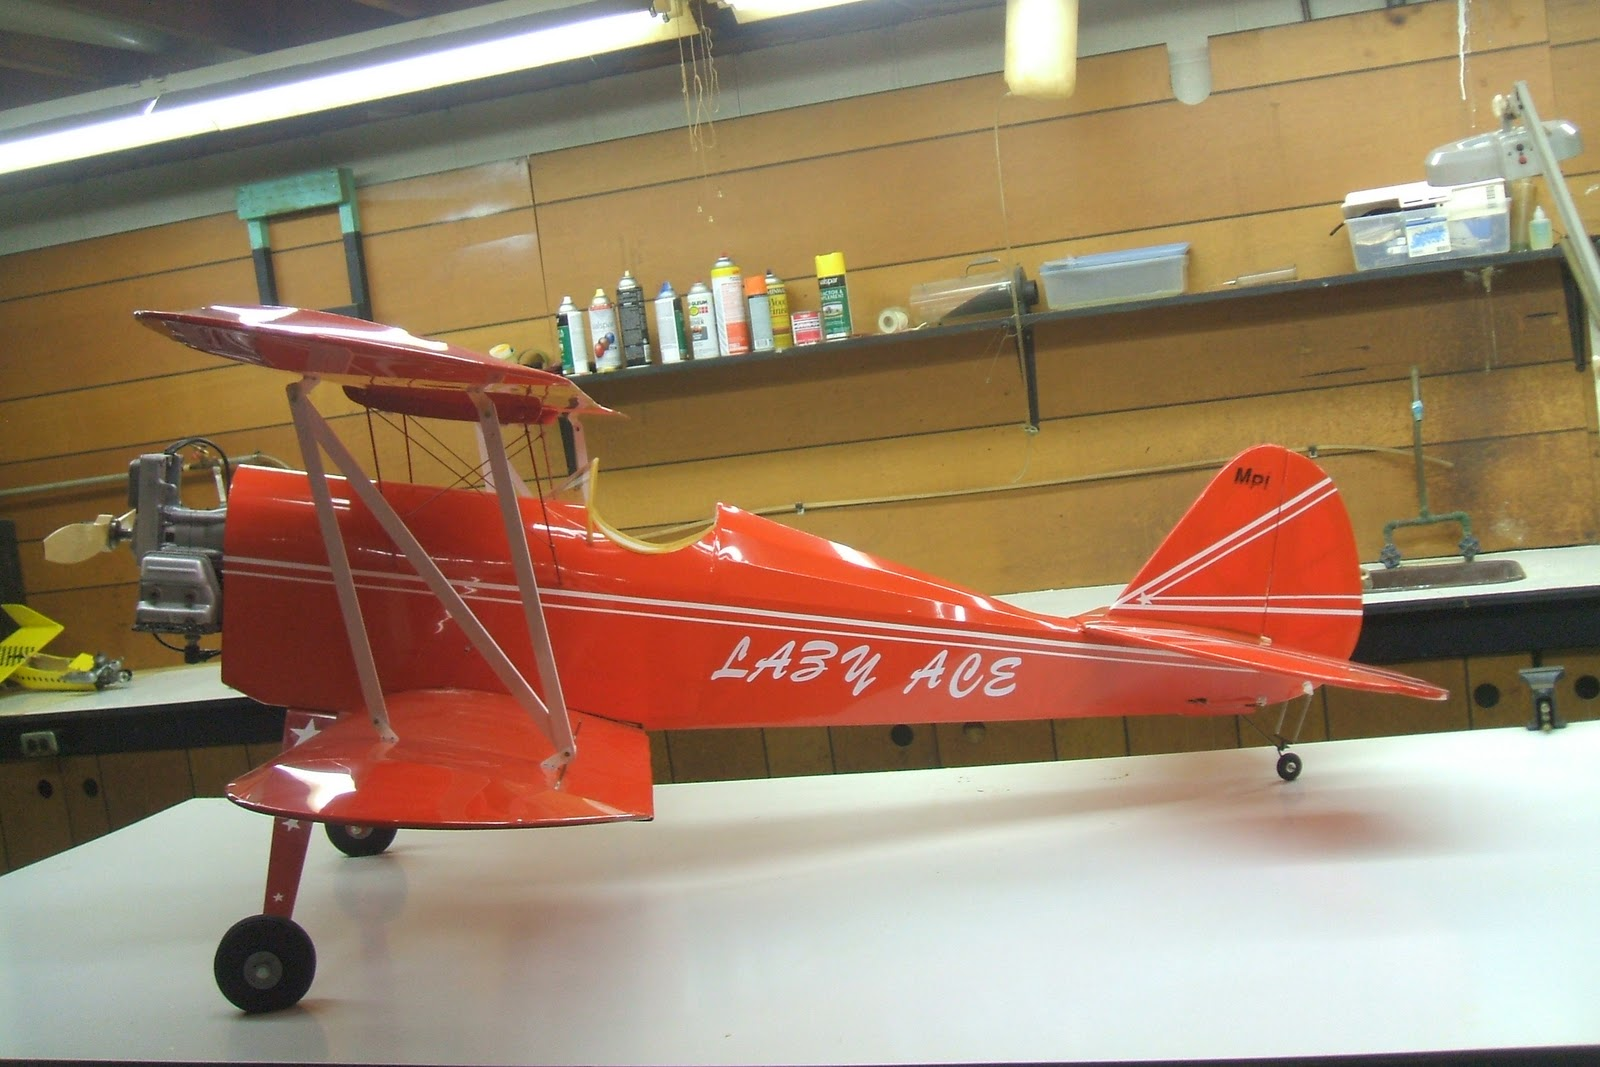 Lazy Ace-RCM-11-77 706 - Plans - AeroFred Model Airplane Free Plans